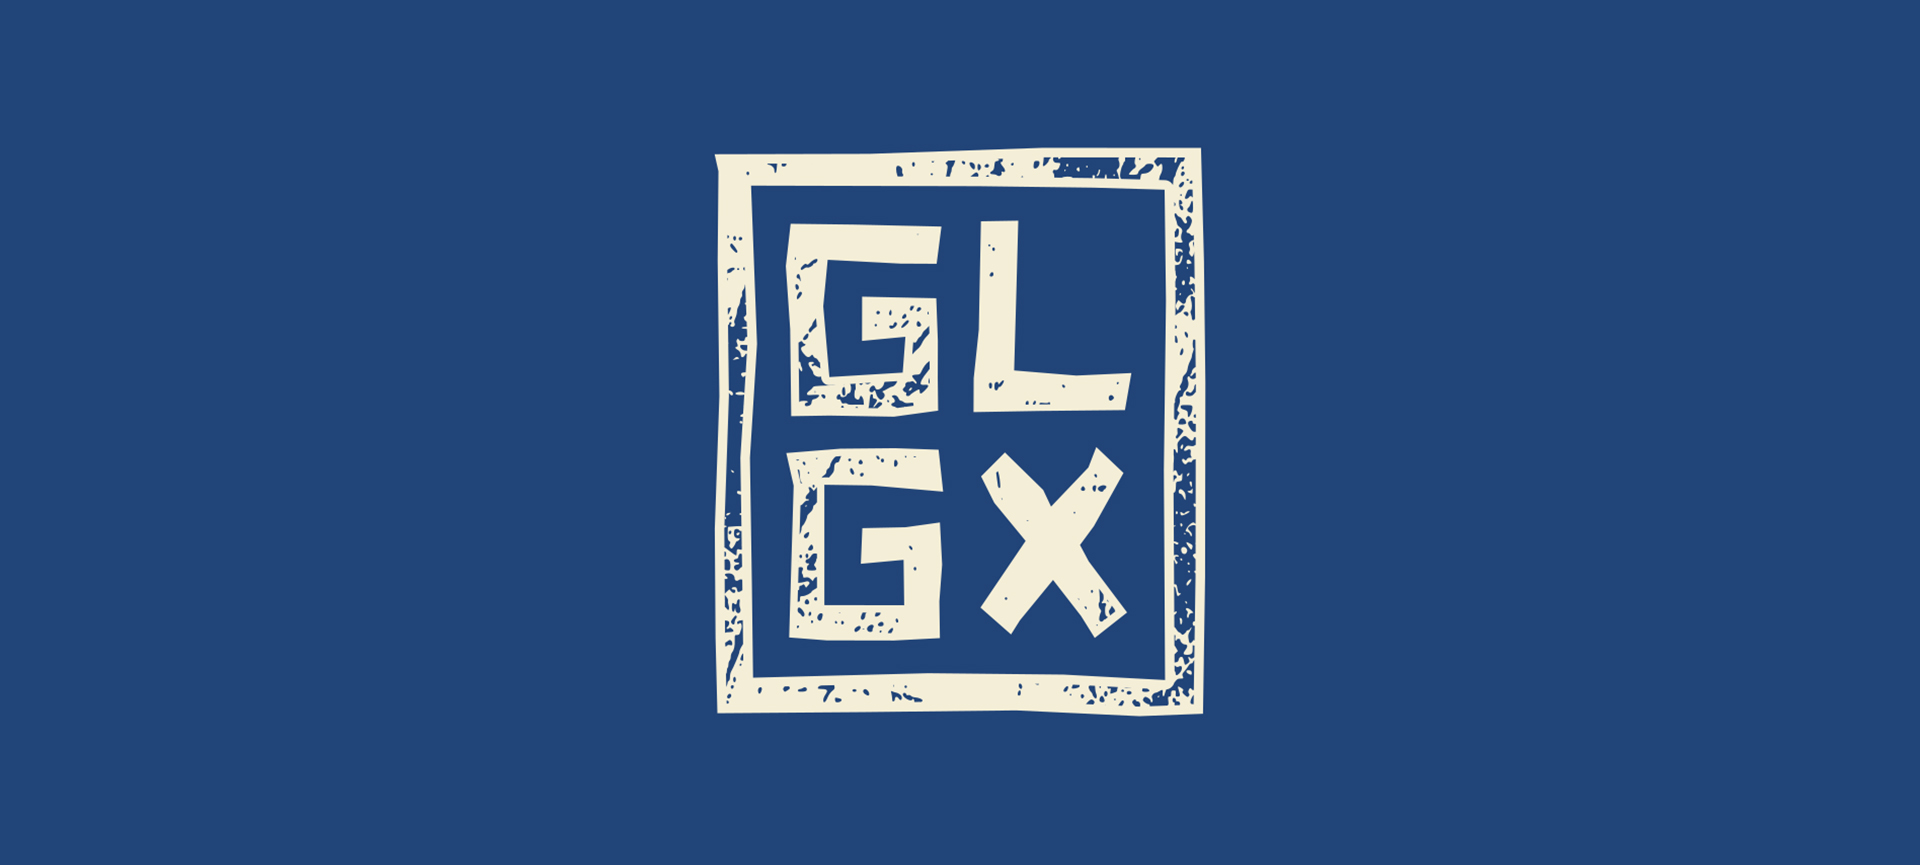 Great Lakes Game Expo shines a light on a growing game development community